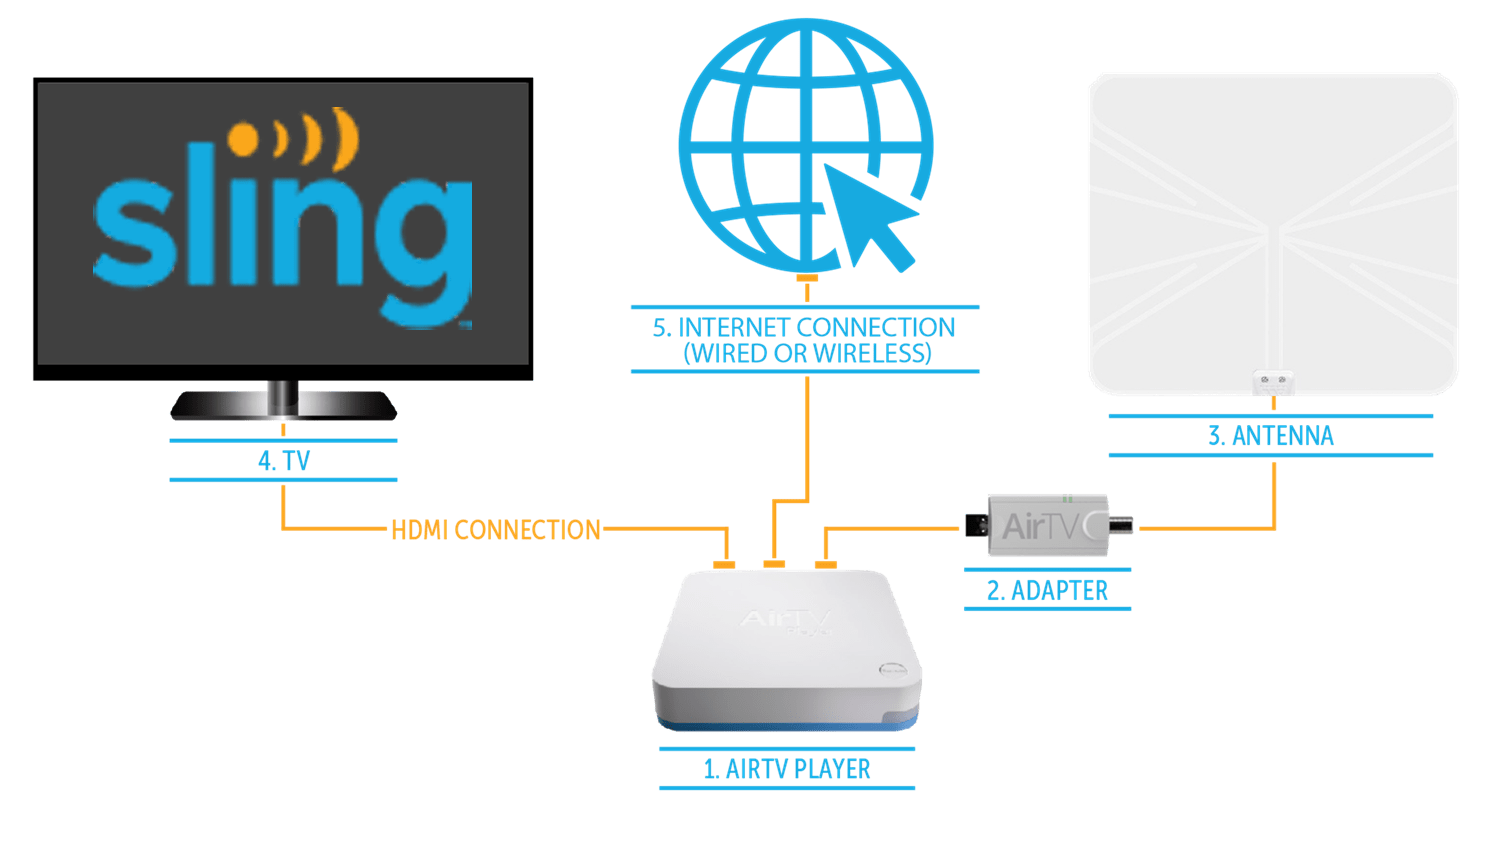 medium resolution of  over the air antenna sold separately and an ethernet or wi fi internet connection please see the diagram below to get the most out of your airtv